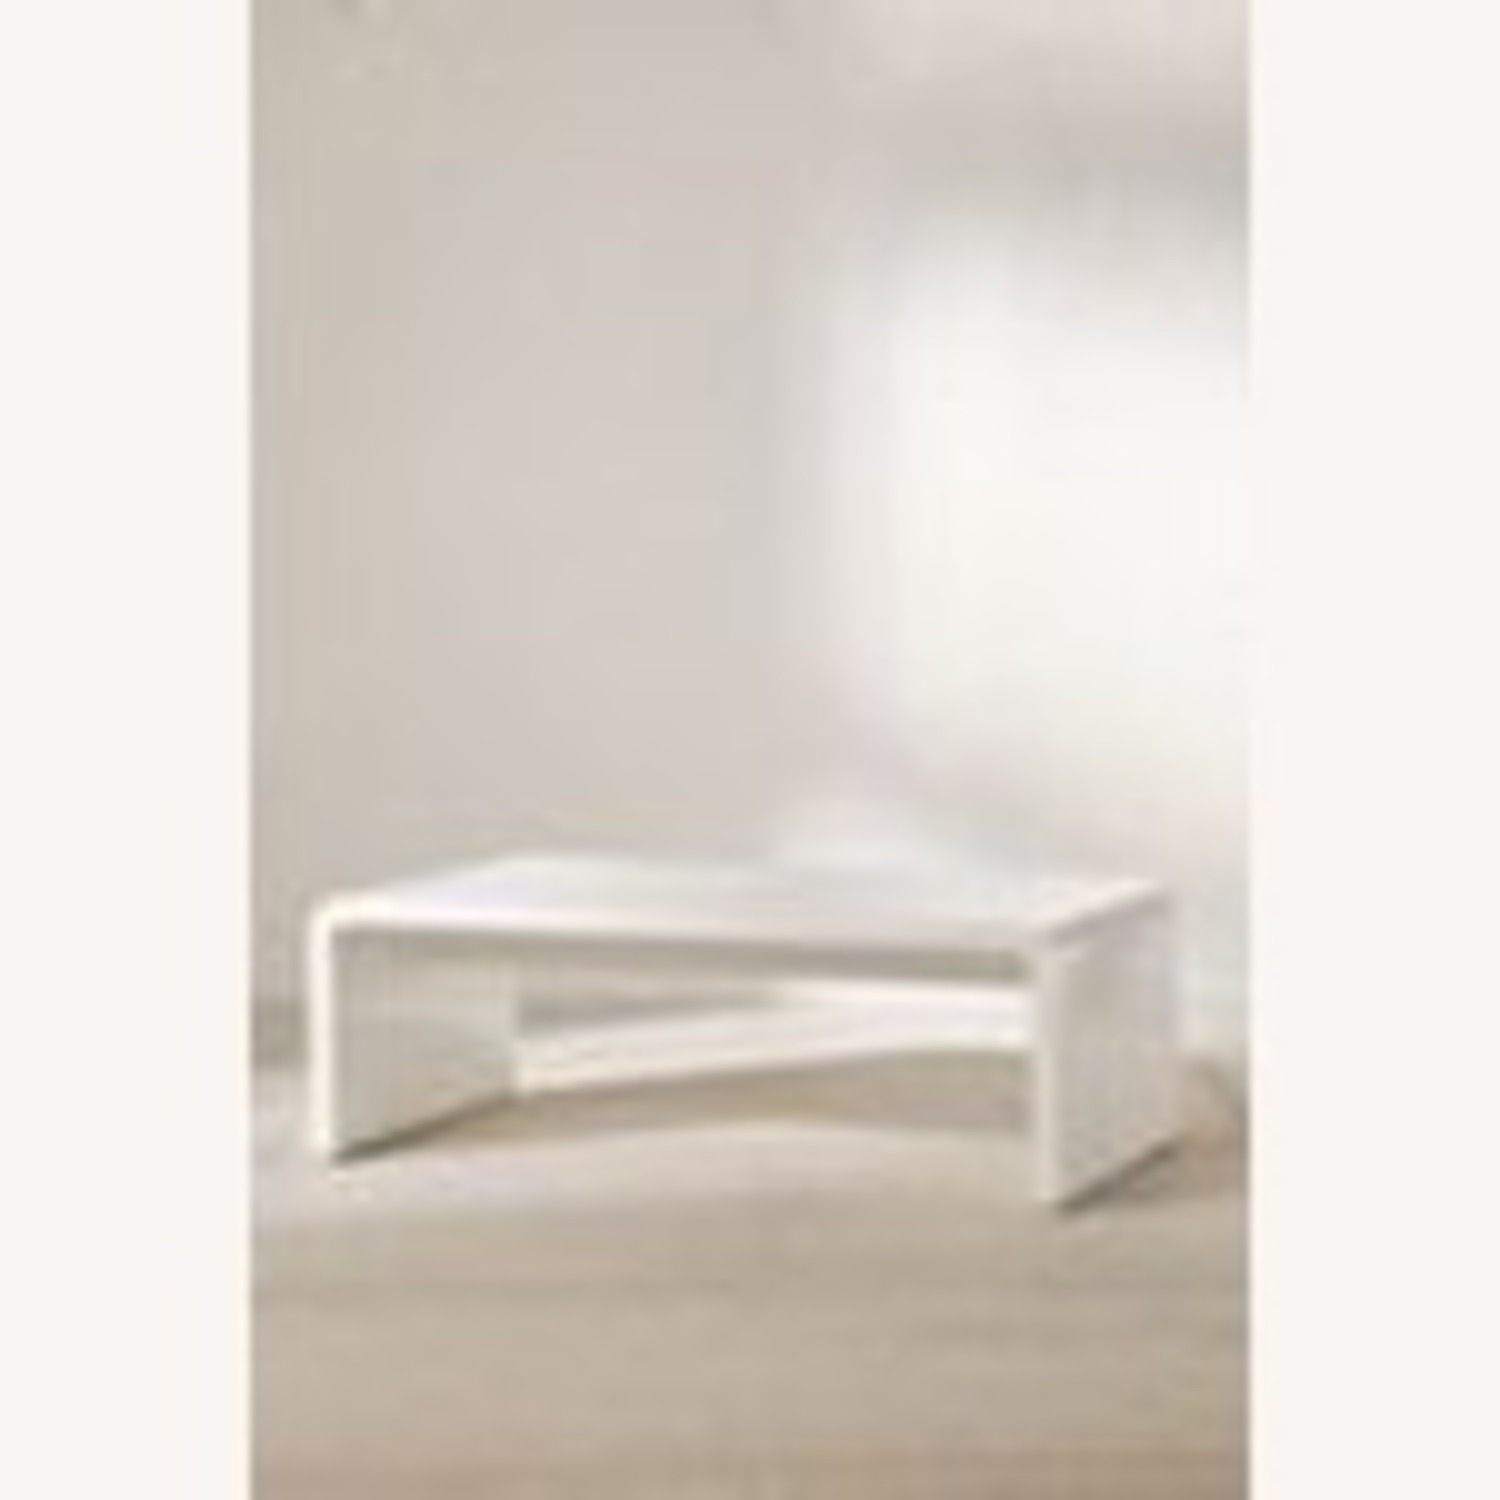 Urban Outfitters Hamilton Curved Coffee Table - image-0